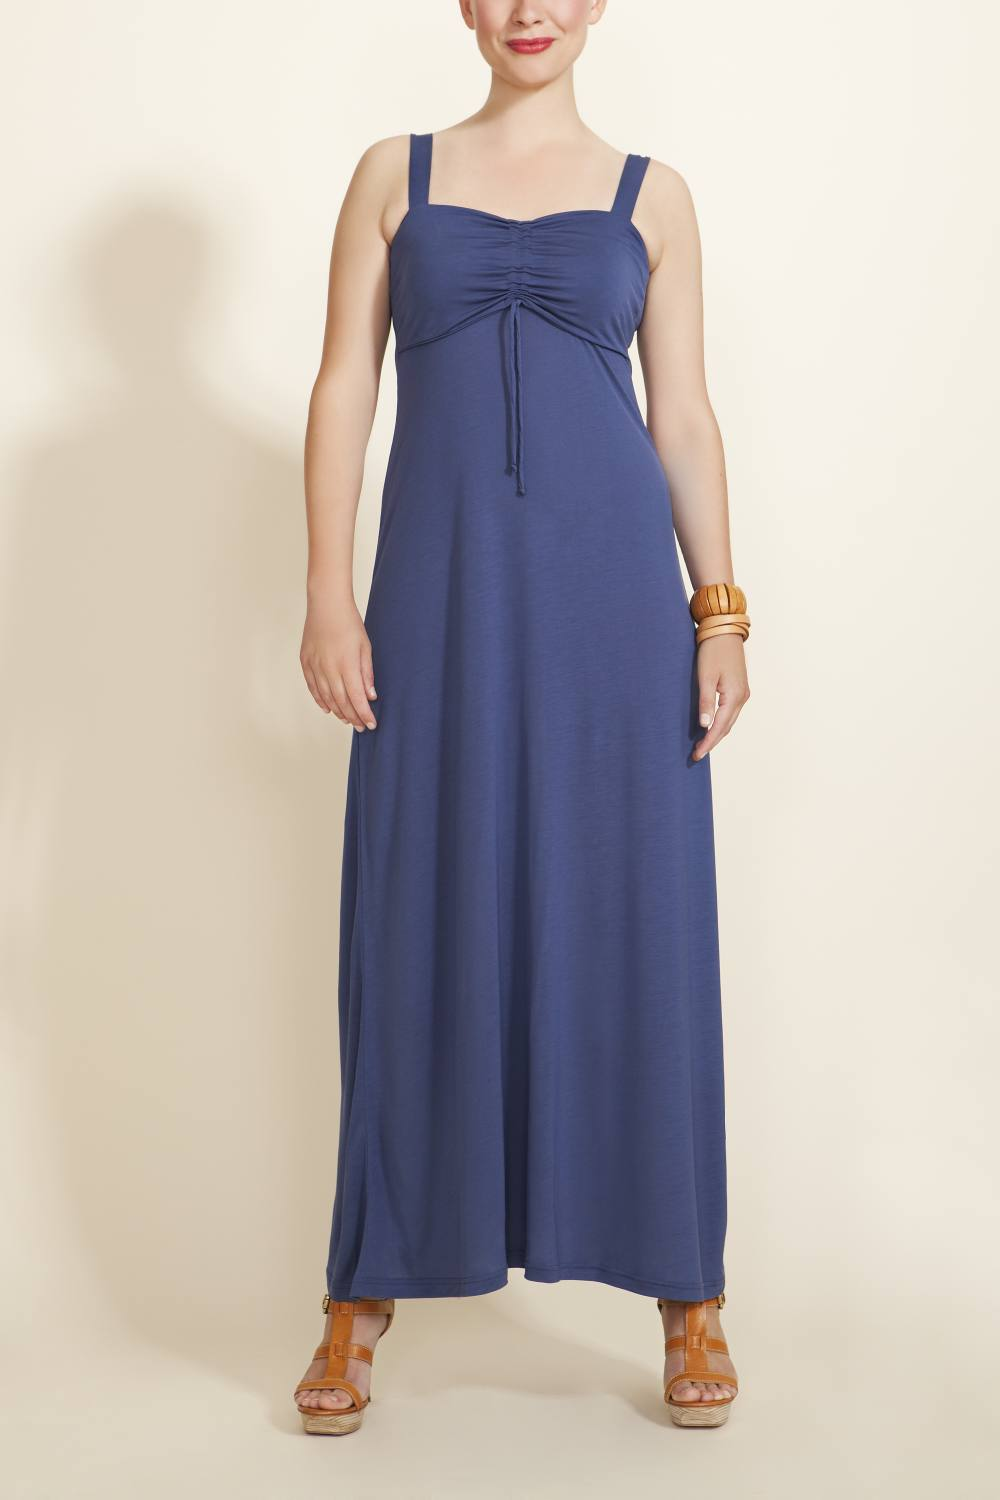 Boob Design Nina Nursing Maxi Dress, Stormy Blue